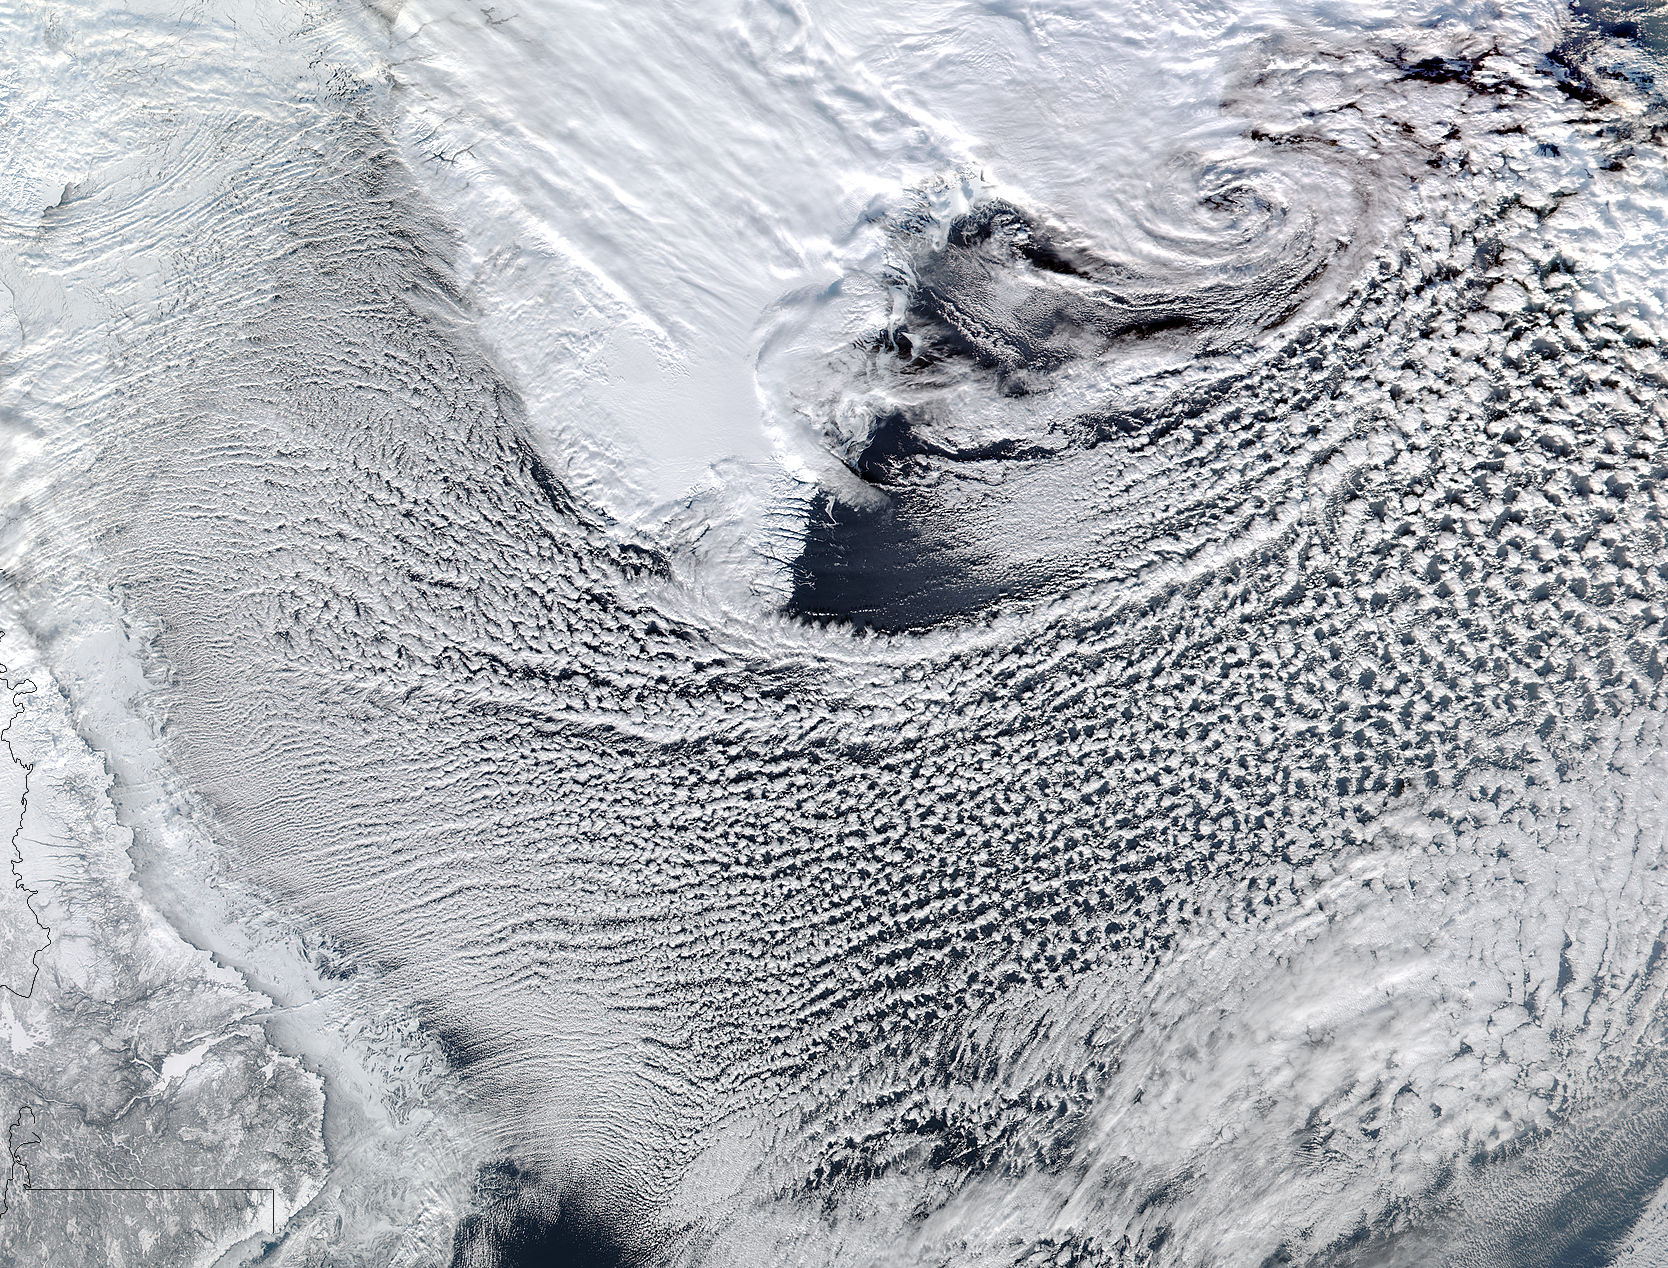 Image of SNPP/VIIRS 2018/038 15:30 UTC Cloud streets in the Labrador Sea, Pixel size 1500m